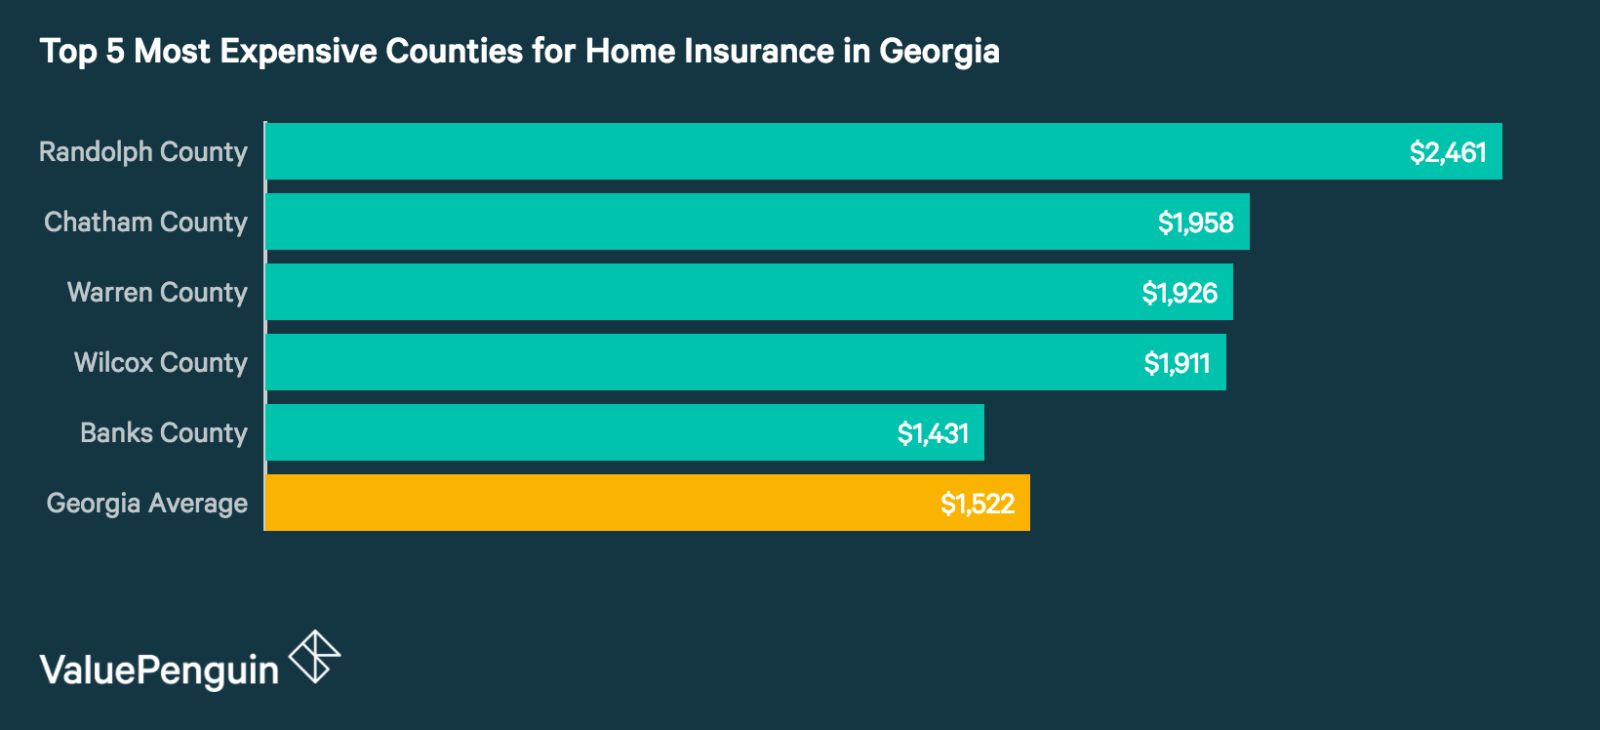 Top 5 Most Expensive Counties in Georgia for Homeowners Insurance